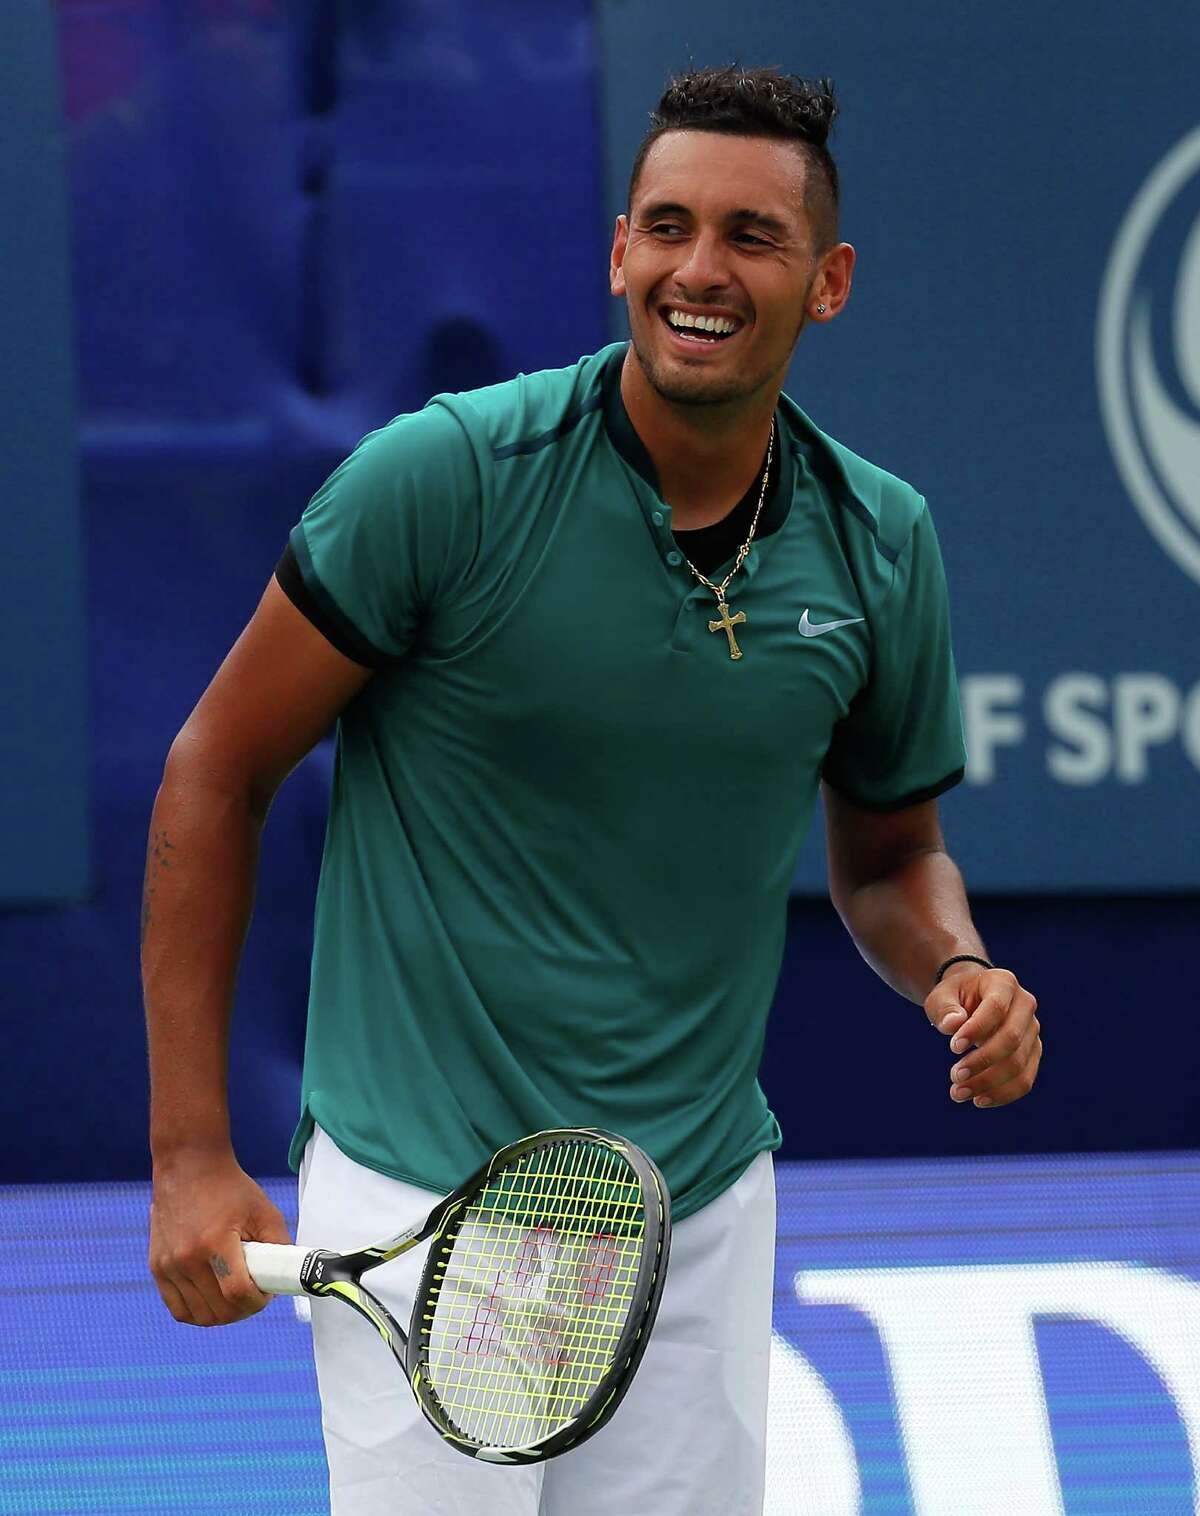 ATLANTA, GA - AUGUST 07: Nick Kyrgios of Australia reacts in the match against John Isner during the finals of the BB&T Atlanta Open at Atlantic Station on August 7, 2016 in Atlanta, Georgia. (Photo by Kevin C. Cox/Getty Images) ORG XMIT: 634833591